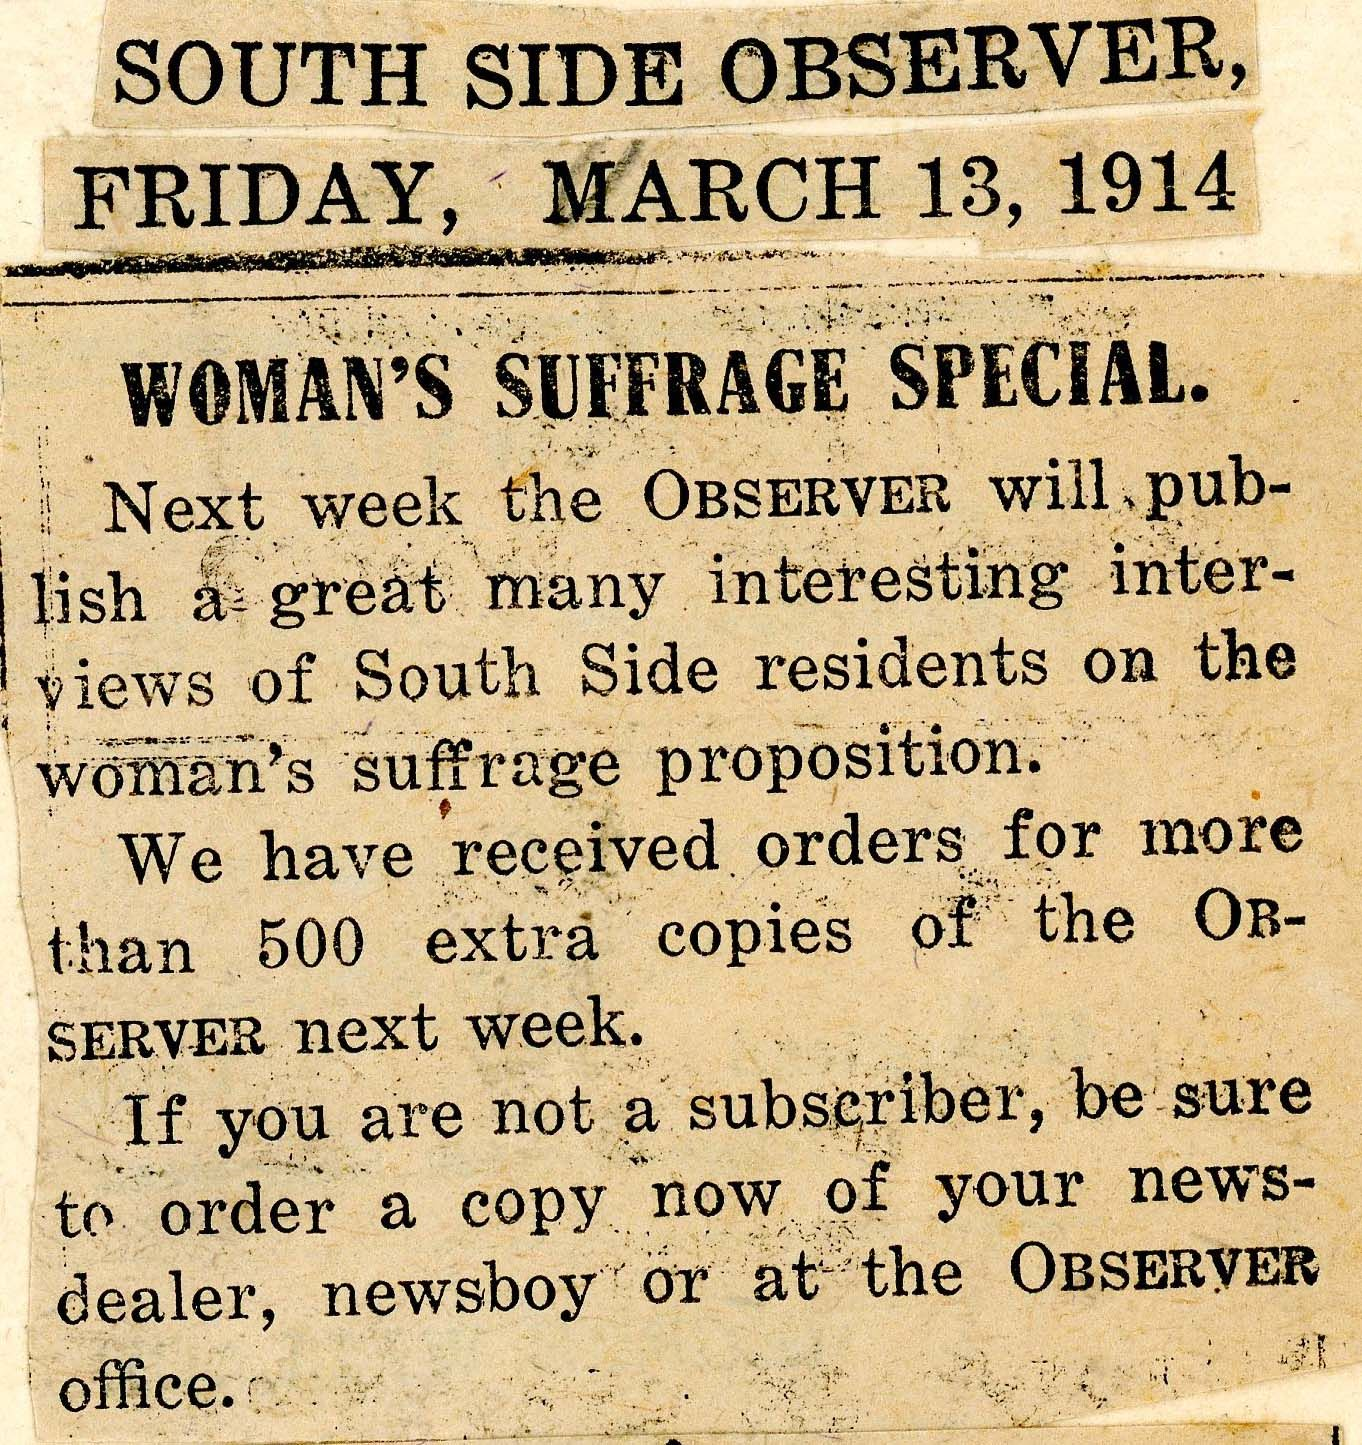 the women s suffrage movement was a big topic that covered the the women s suffrage movement was a big topic that covered the newspaper front page many times